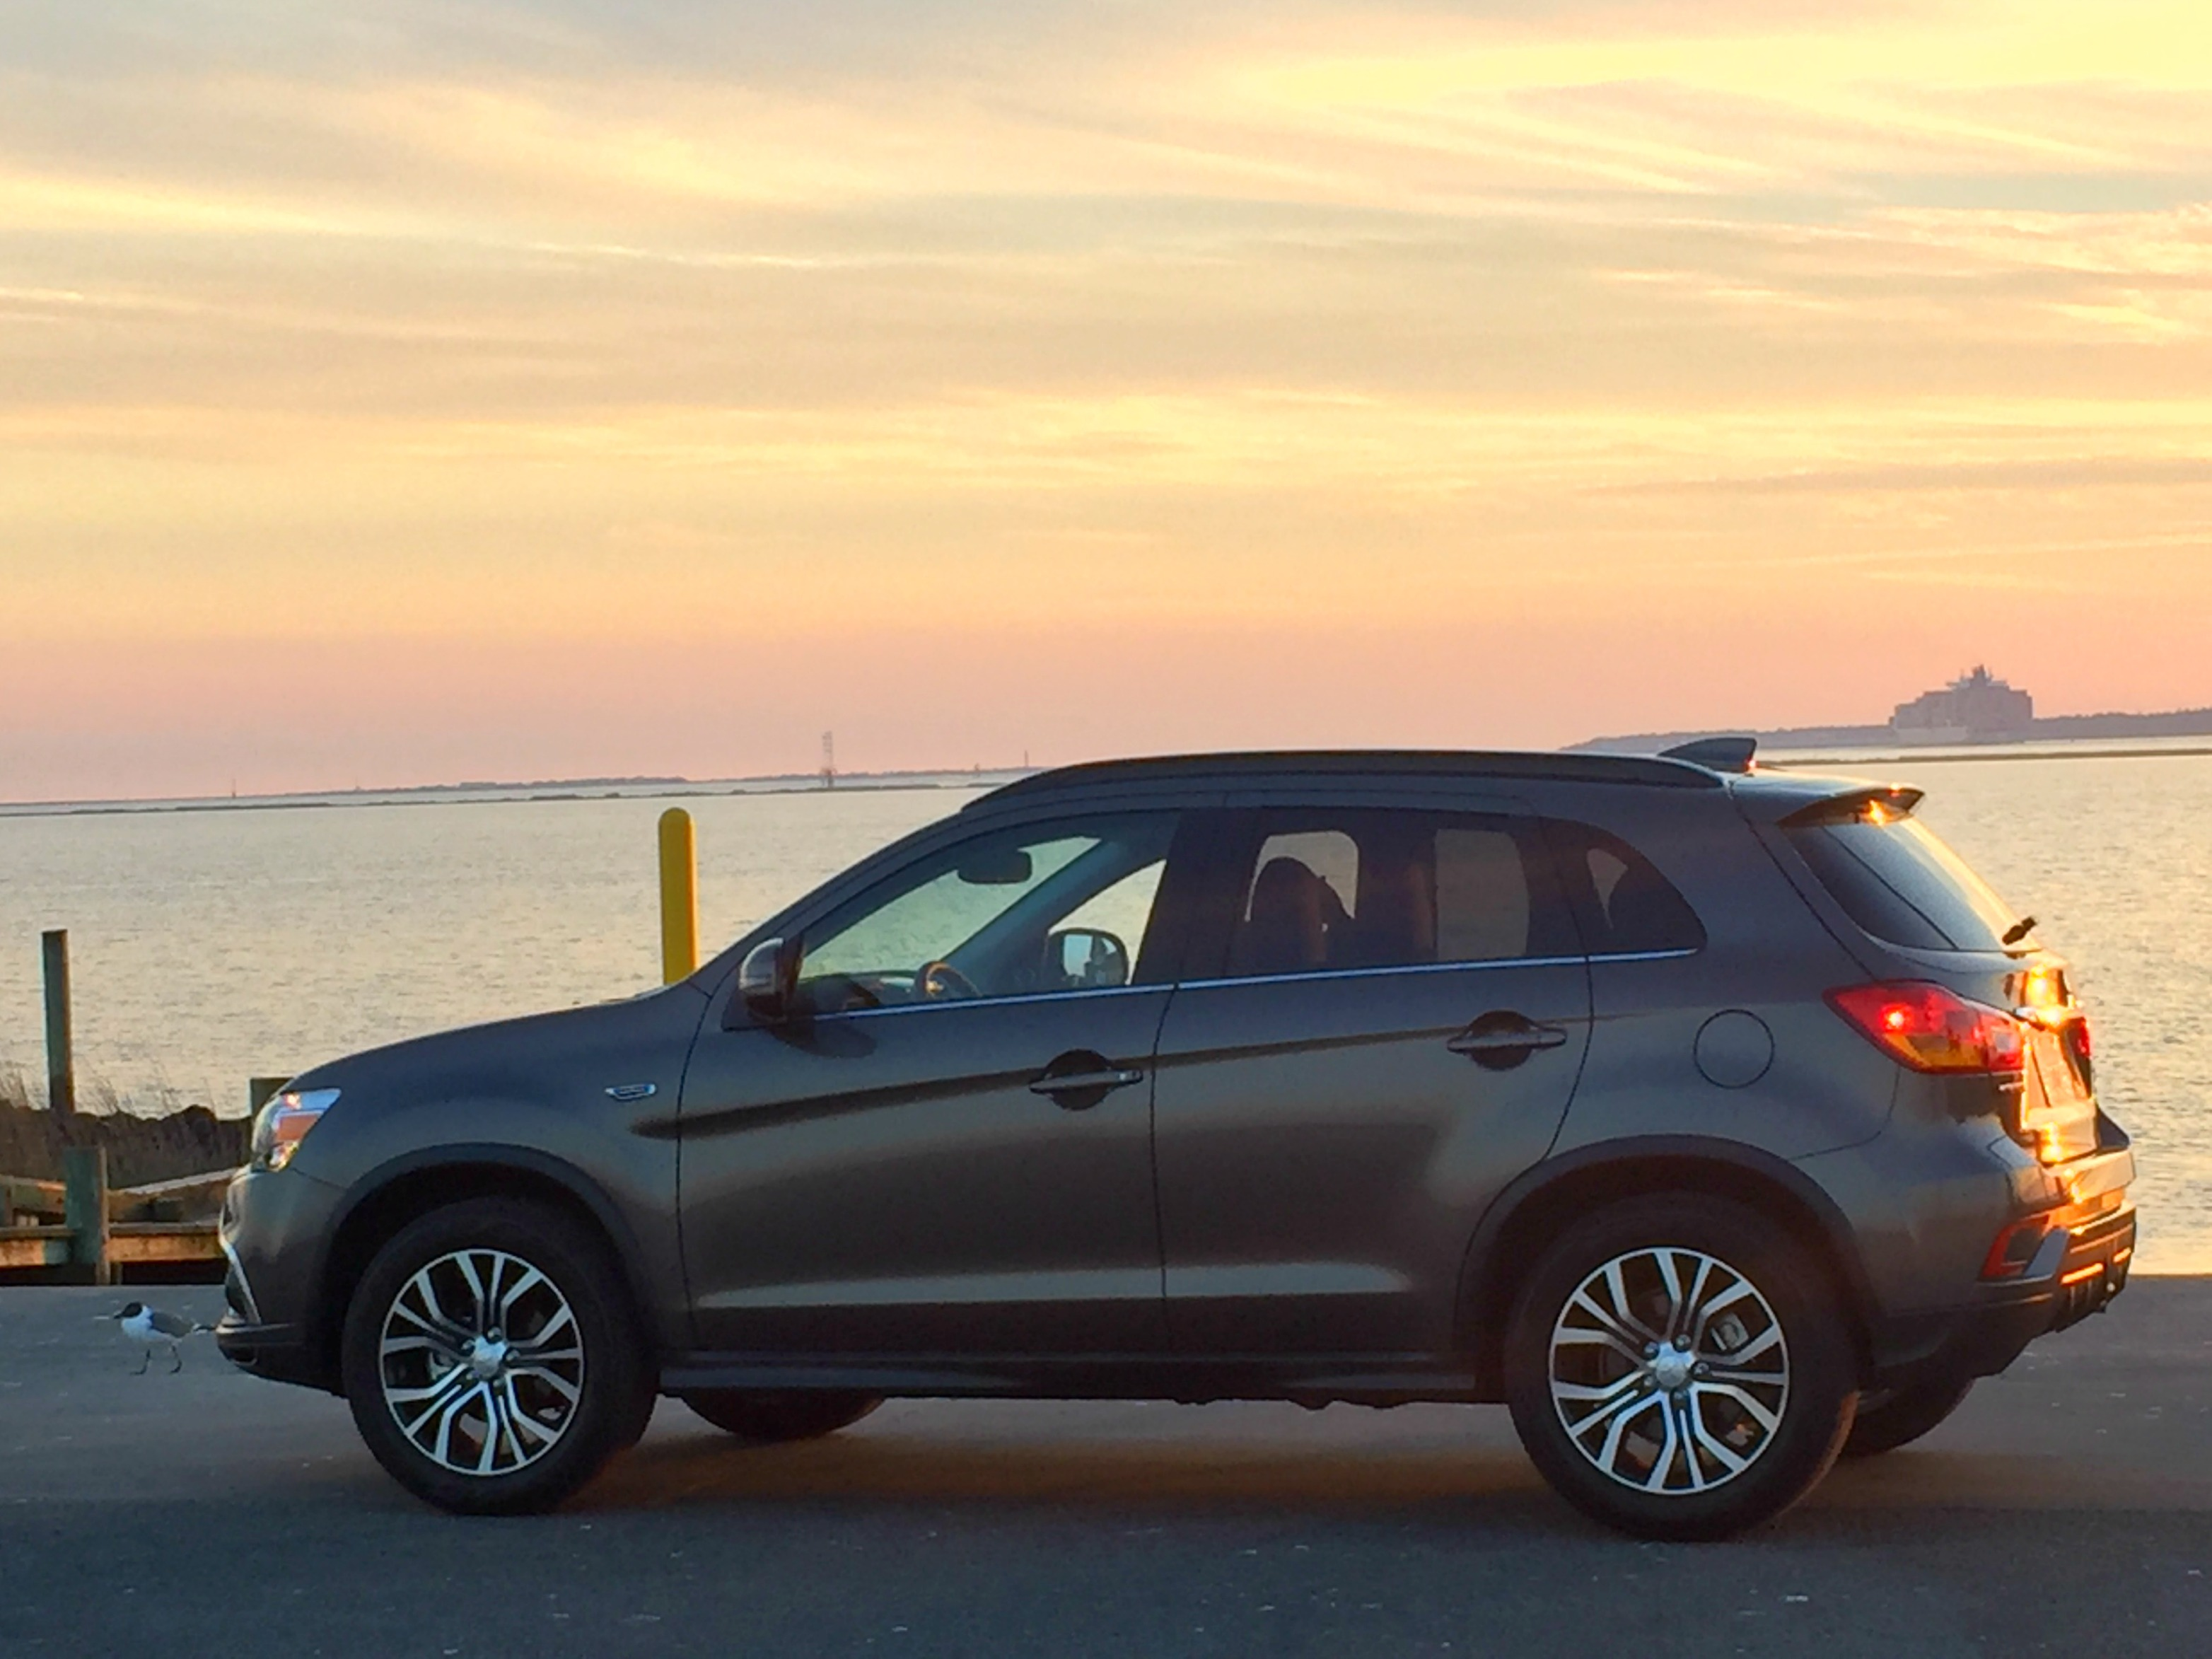 Mitsubishi Outlander Sport features